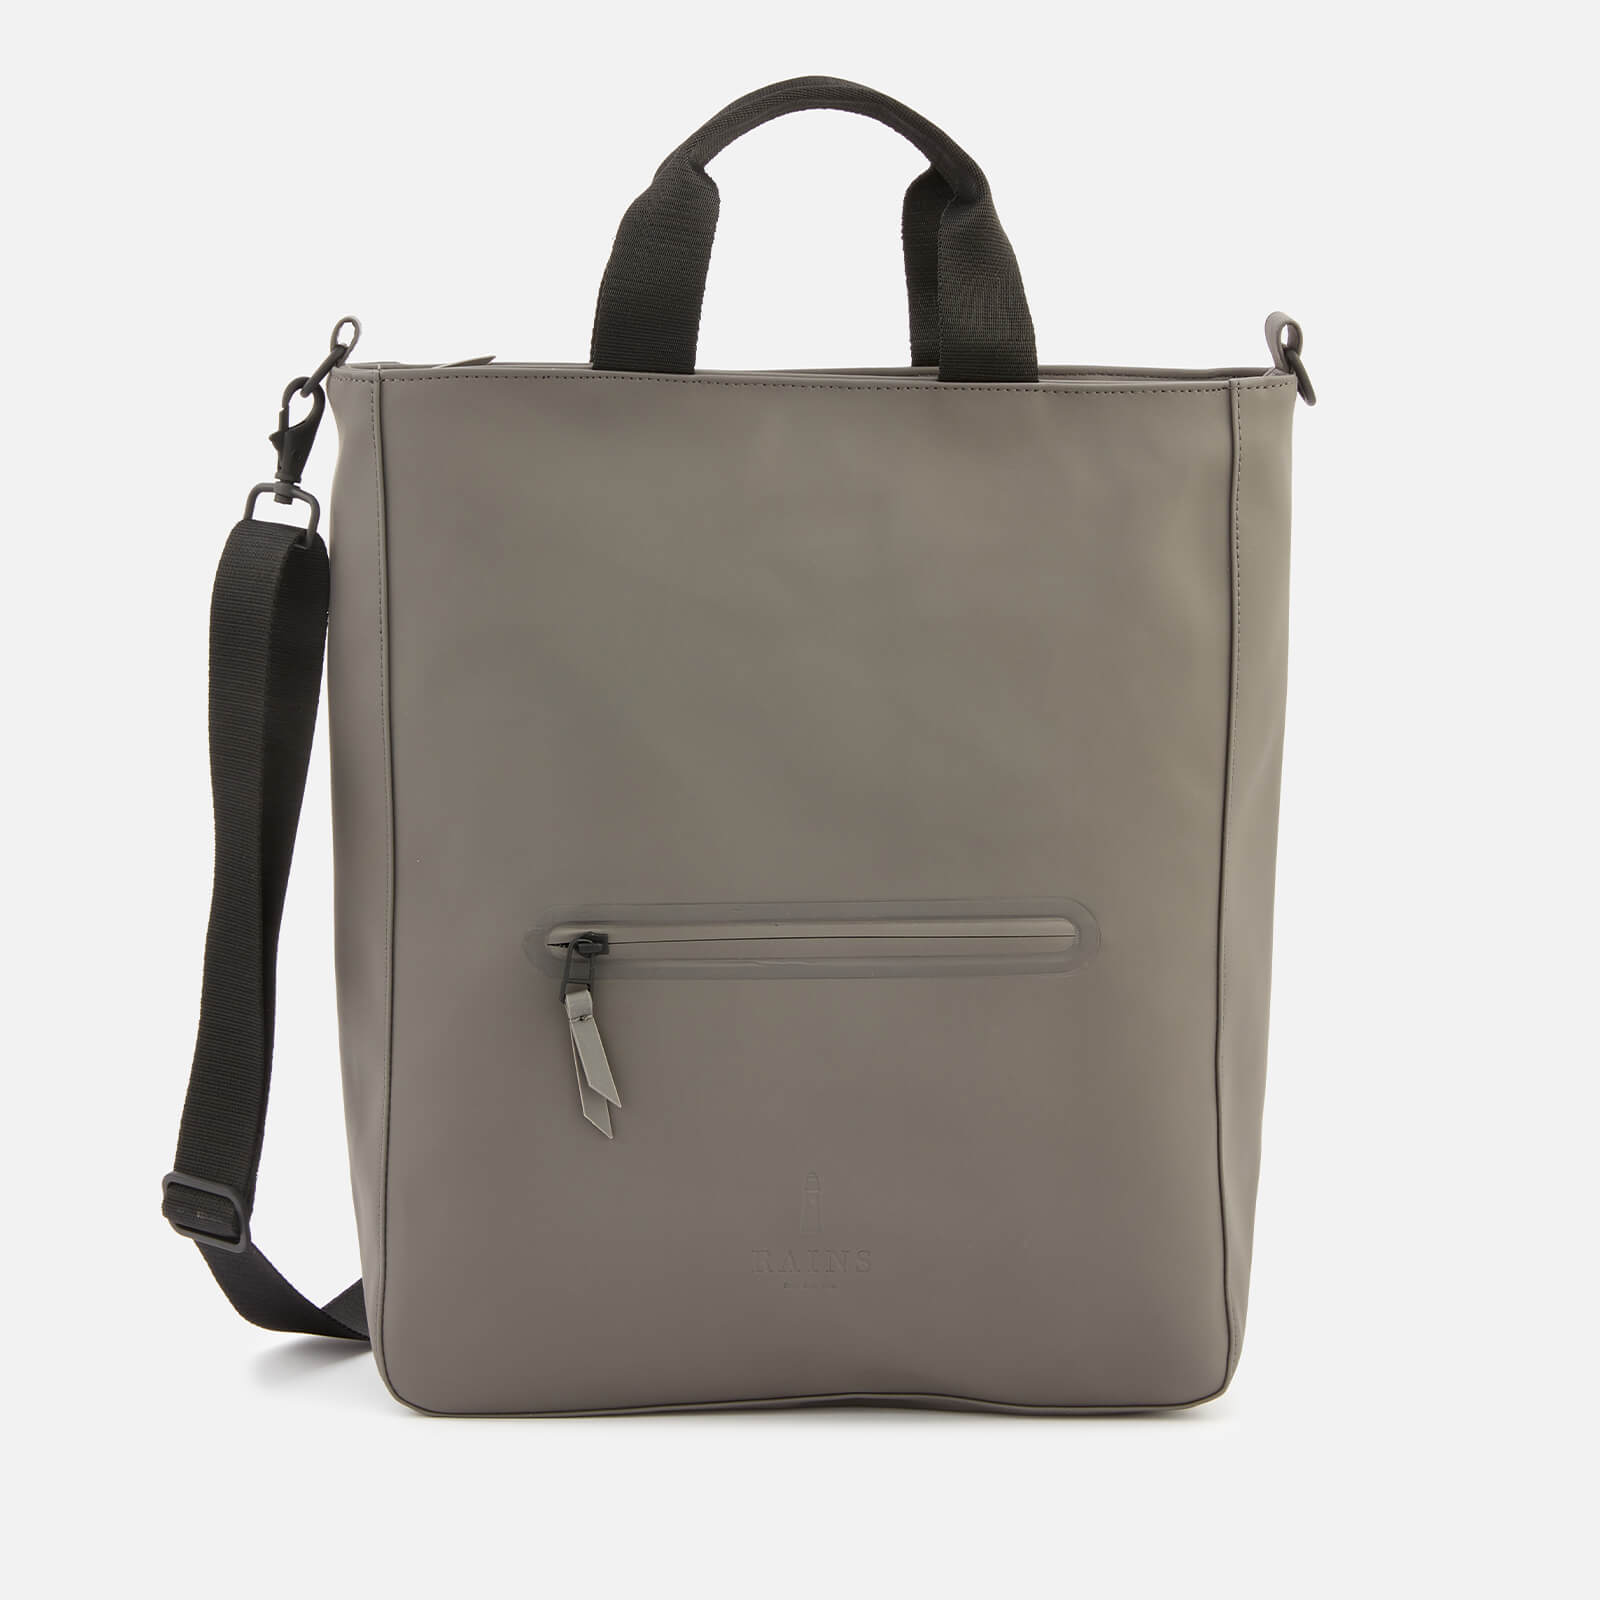 Click to view product details and reviews for Rains Cross Body Tote Bag Charcoal.